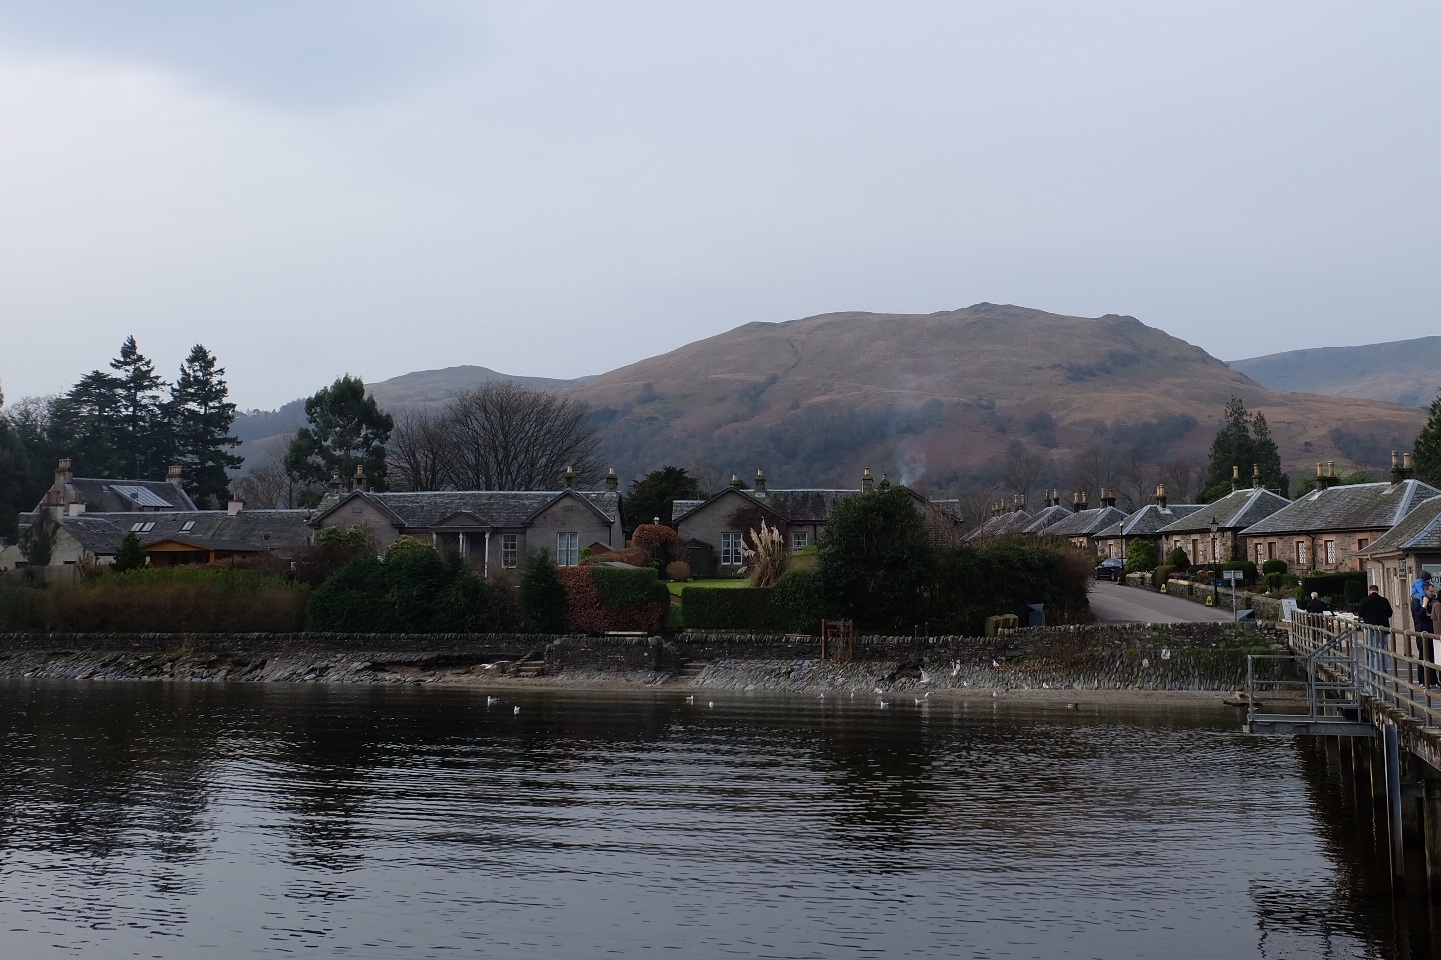 View of Luss from the pier.